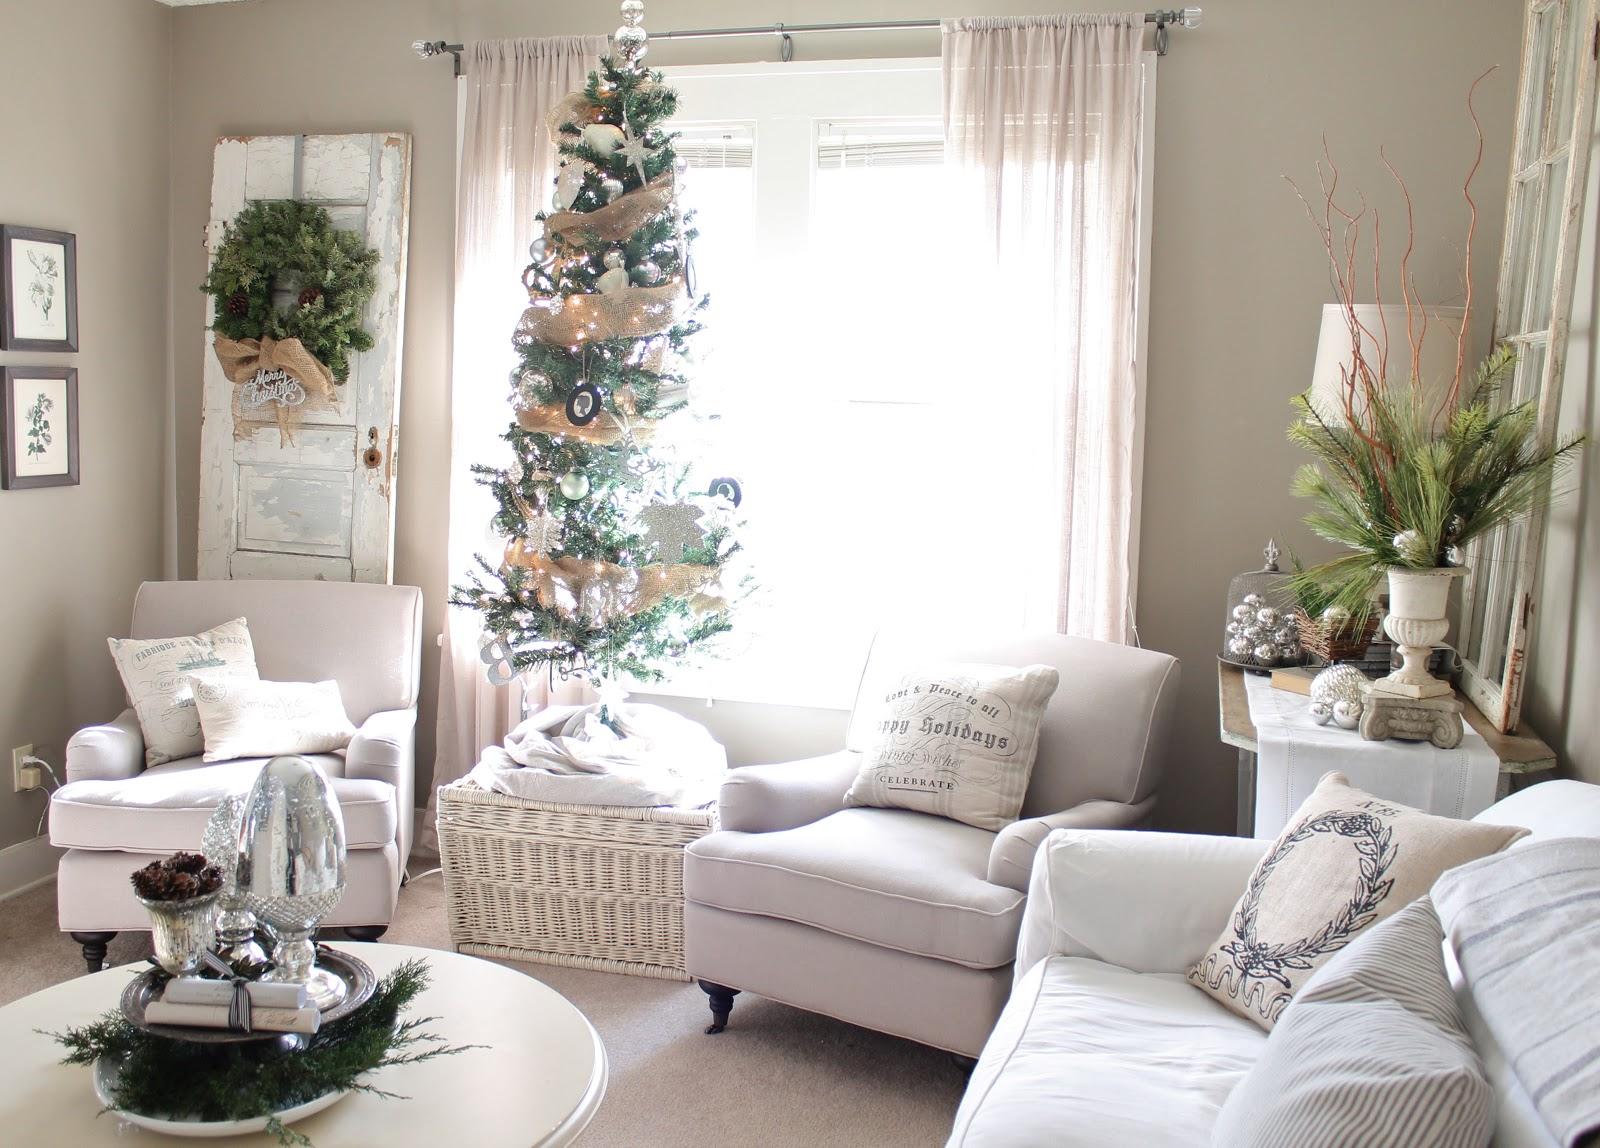 Our Christmas Living Room  Part 2